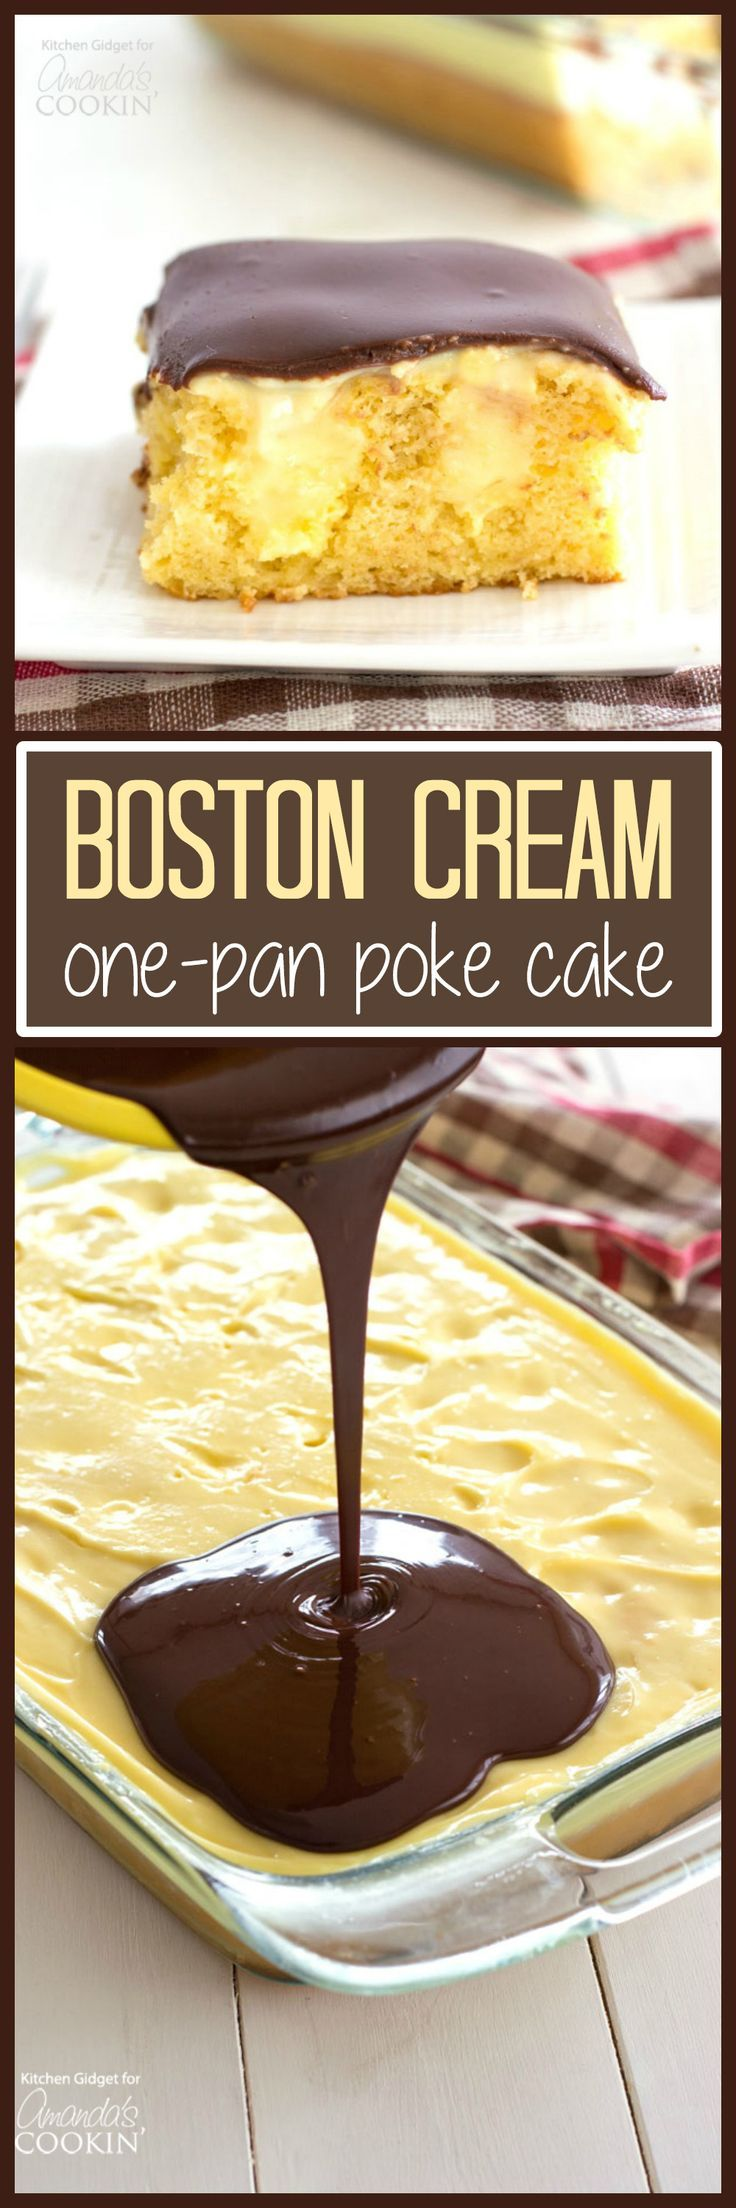 This Boston Cream Poke Cake is so easy and scrumptious. Plan to take this one-pan dessert to your next gathering, it'll be a hit!